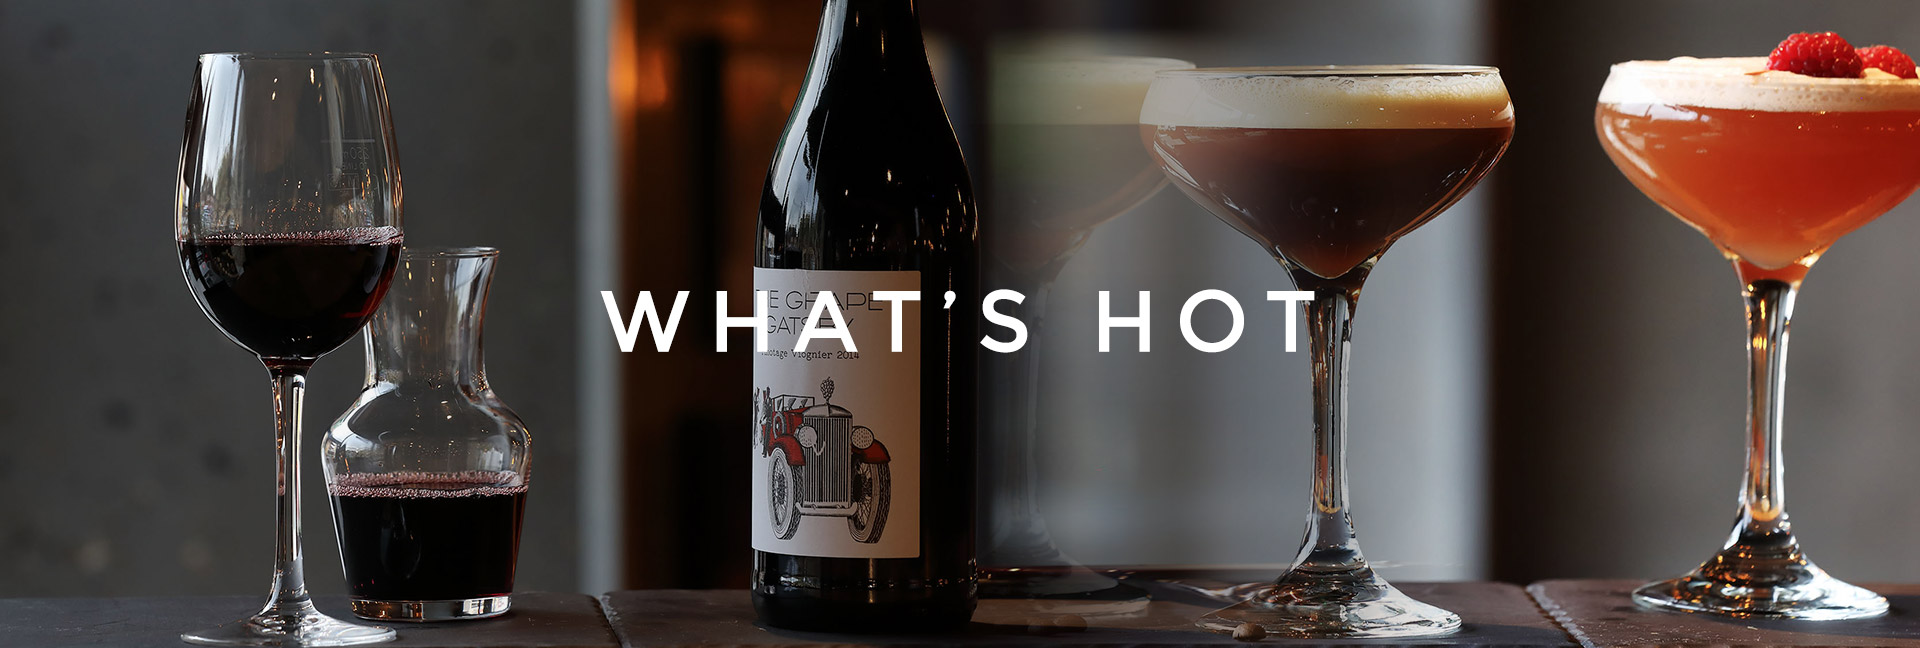 What's Hot at All Bar One West Quay